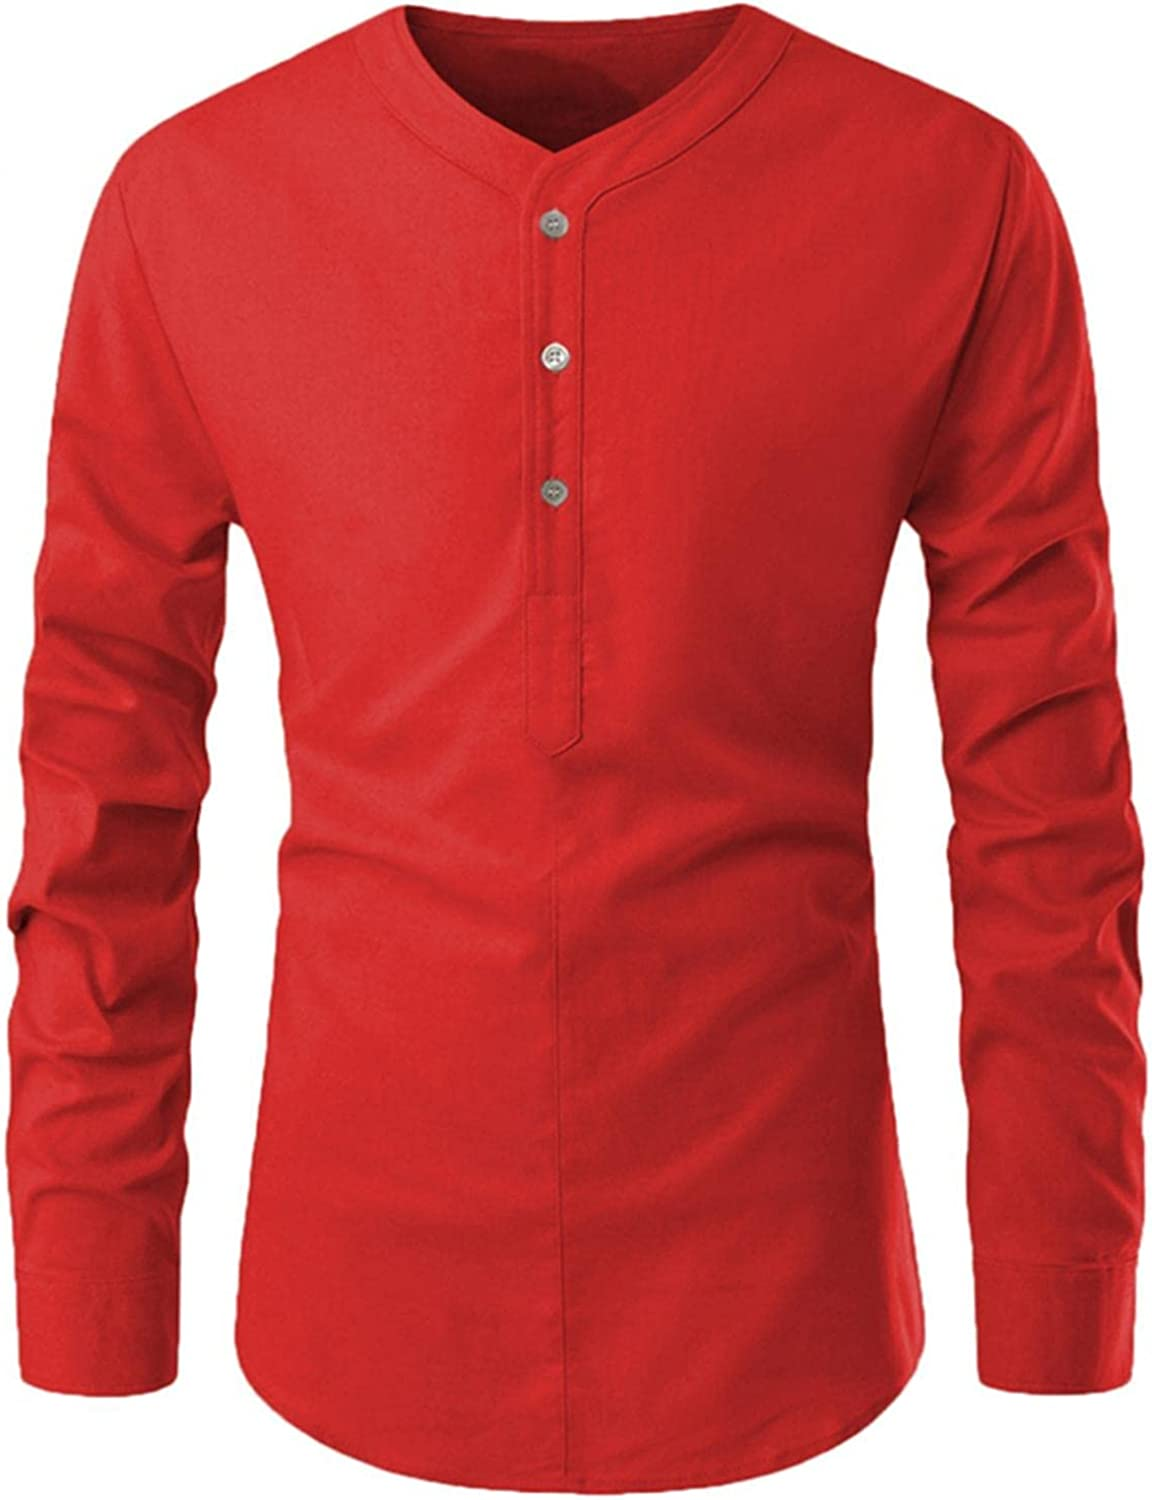 Long Sleeve Henley T Shirts Casual Slim Fit Button Up Shirt Big and Tall Fashion Collarless V Neck Tees Tops